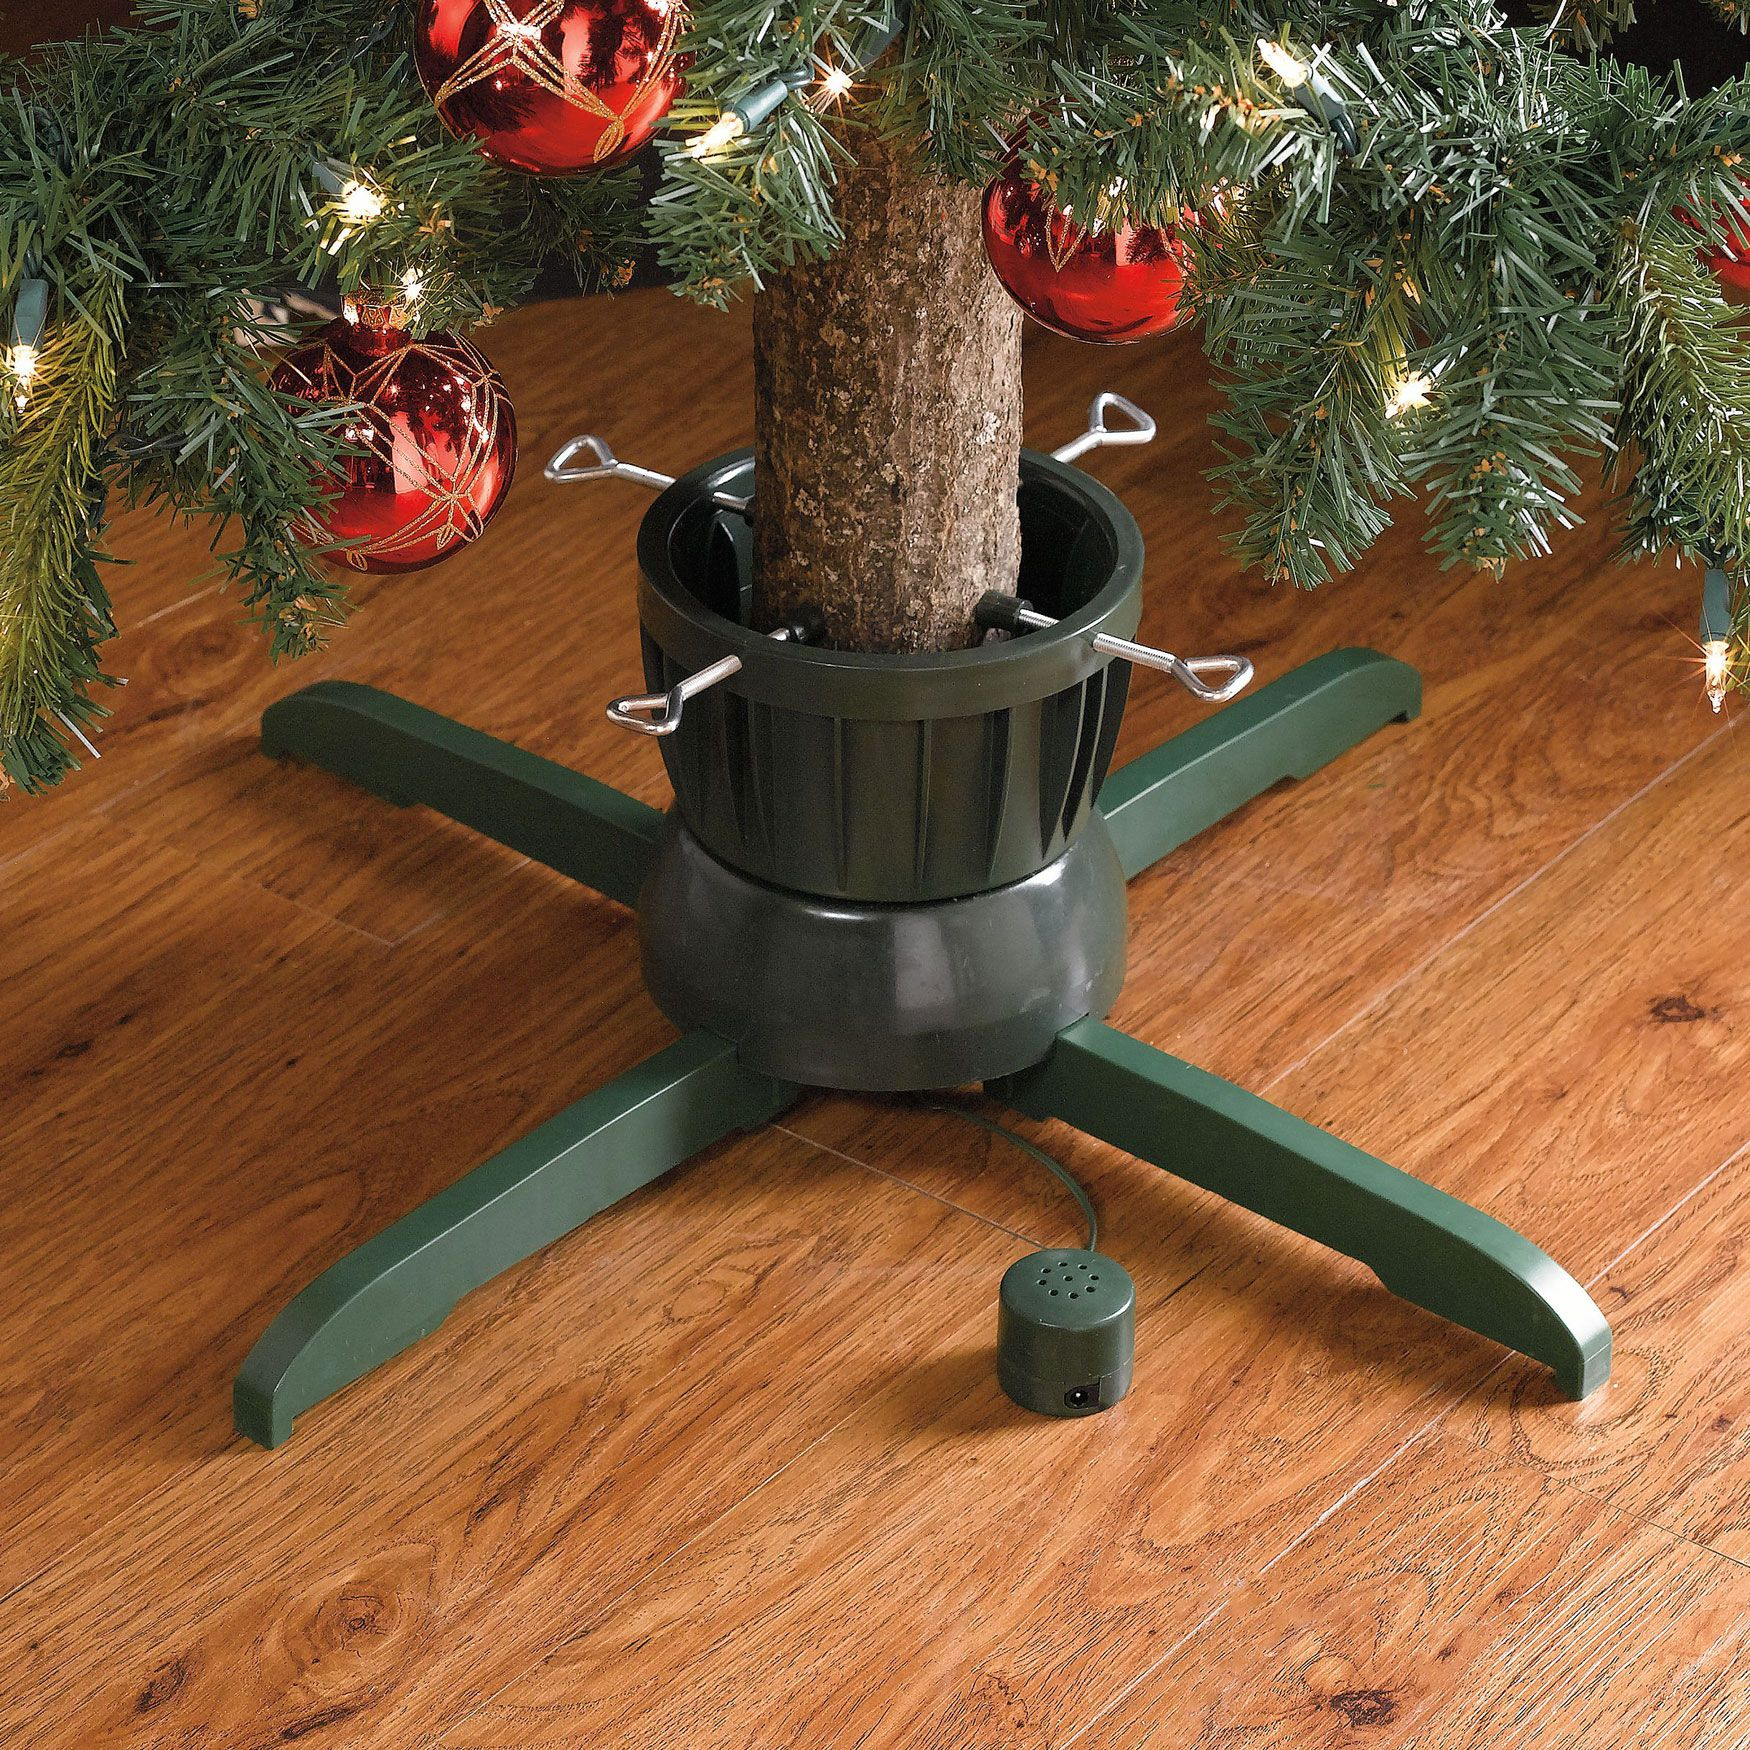 Christmas Tree Stand For Sale Vintage Evergleam Revolving Christmas Tree Stand Musical Stand